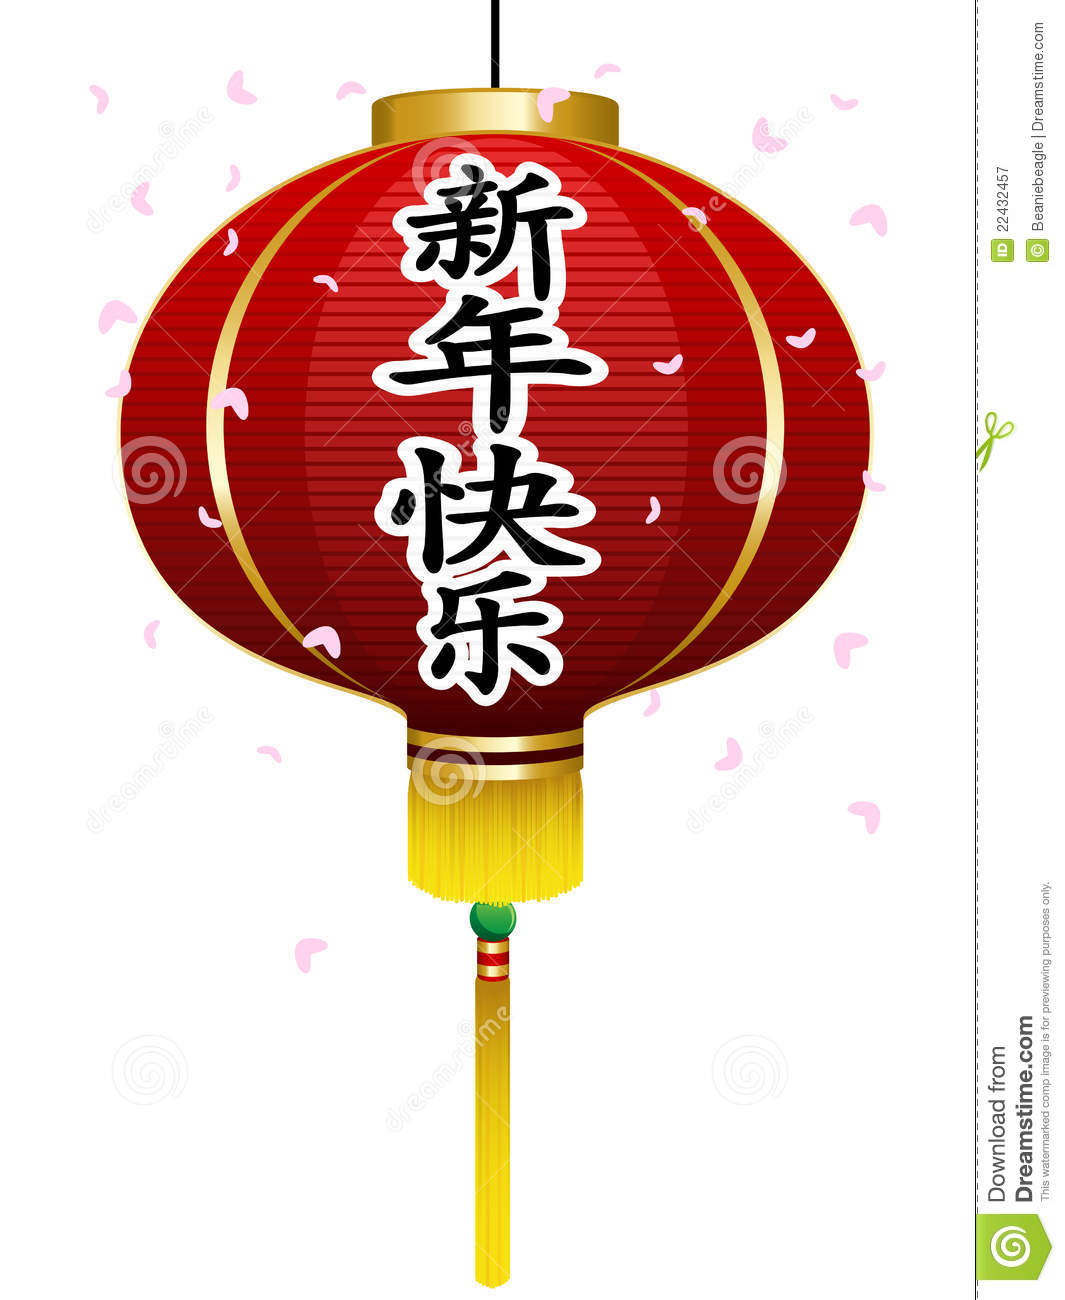 An illustration of a traditional chinese lantern with a happy new year